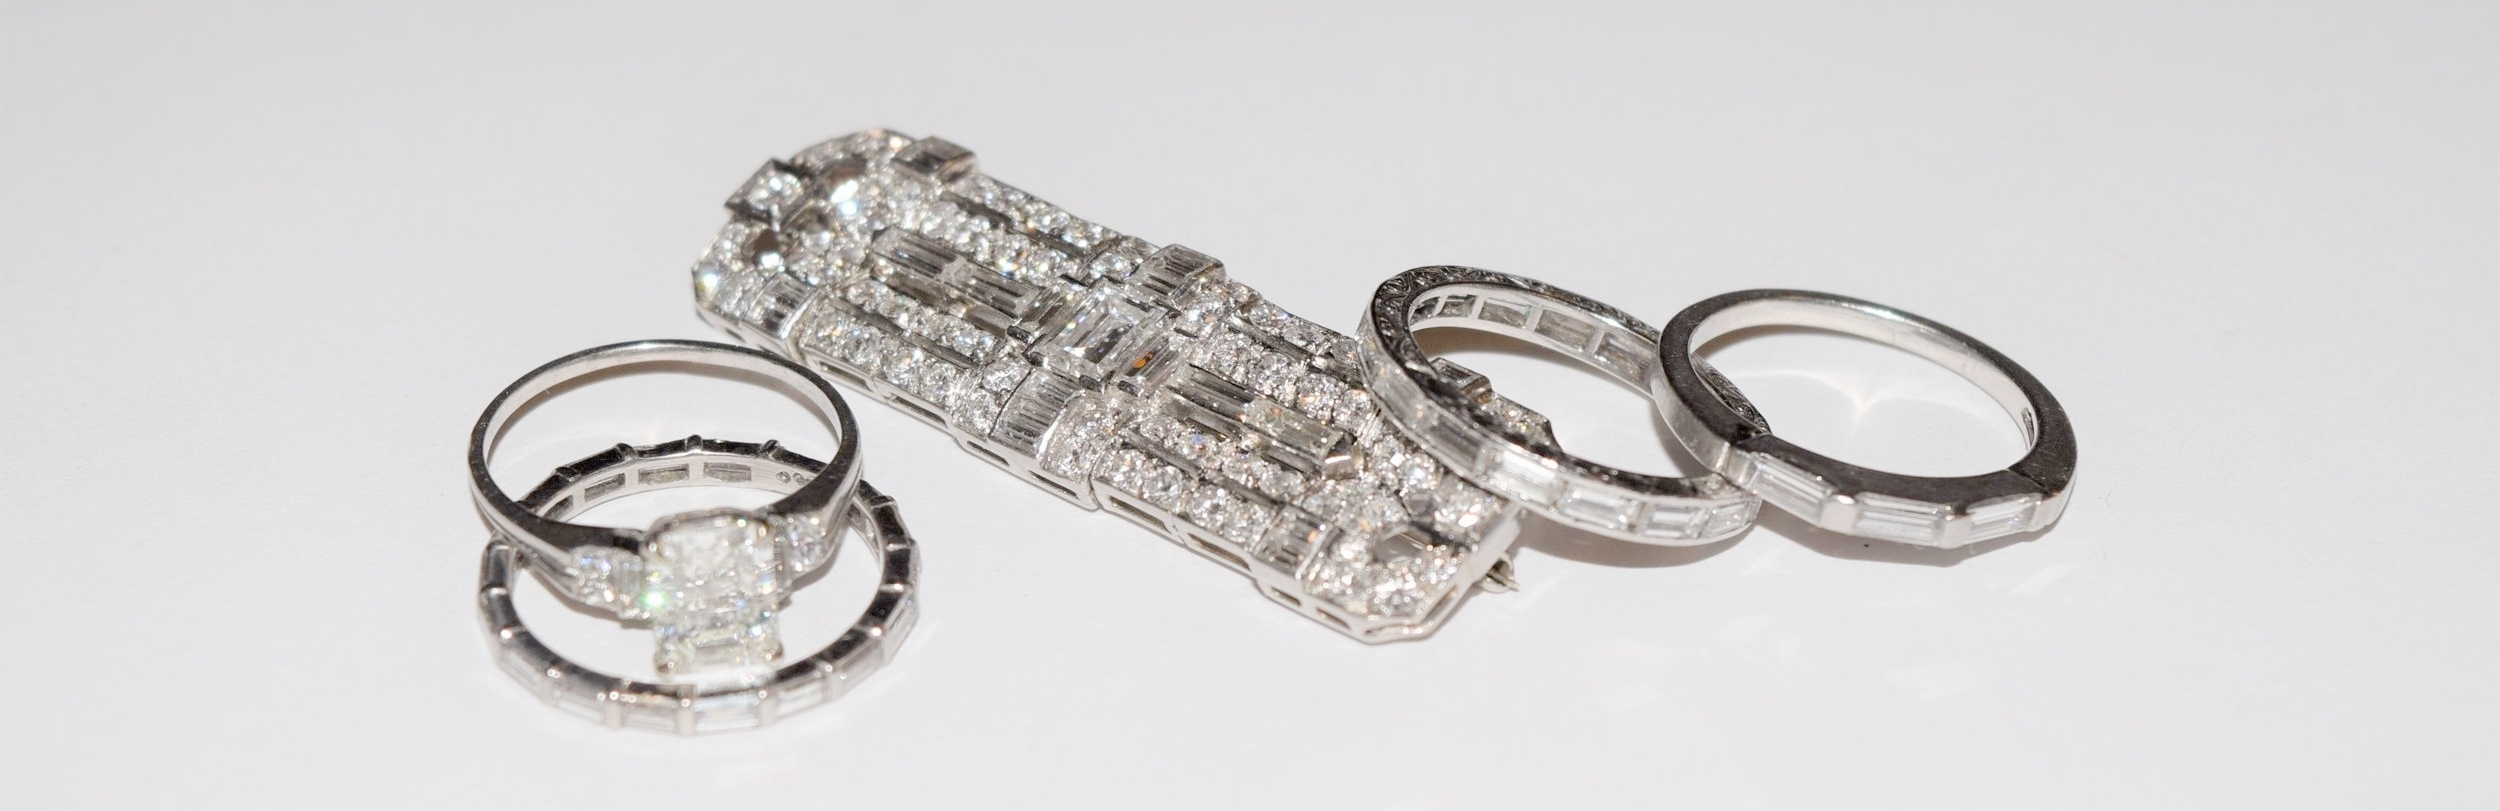 古董 and vintage baguette diamond jewelry at 灰色& Davis